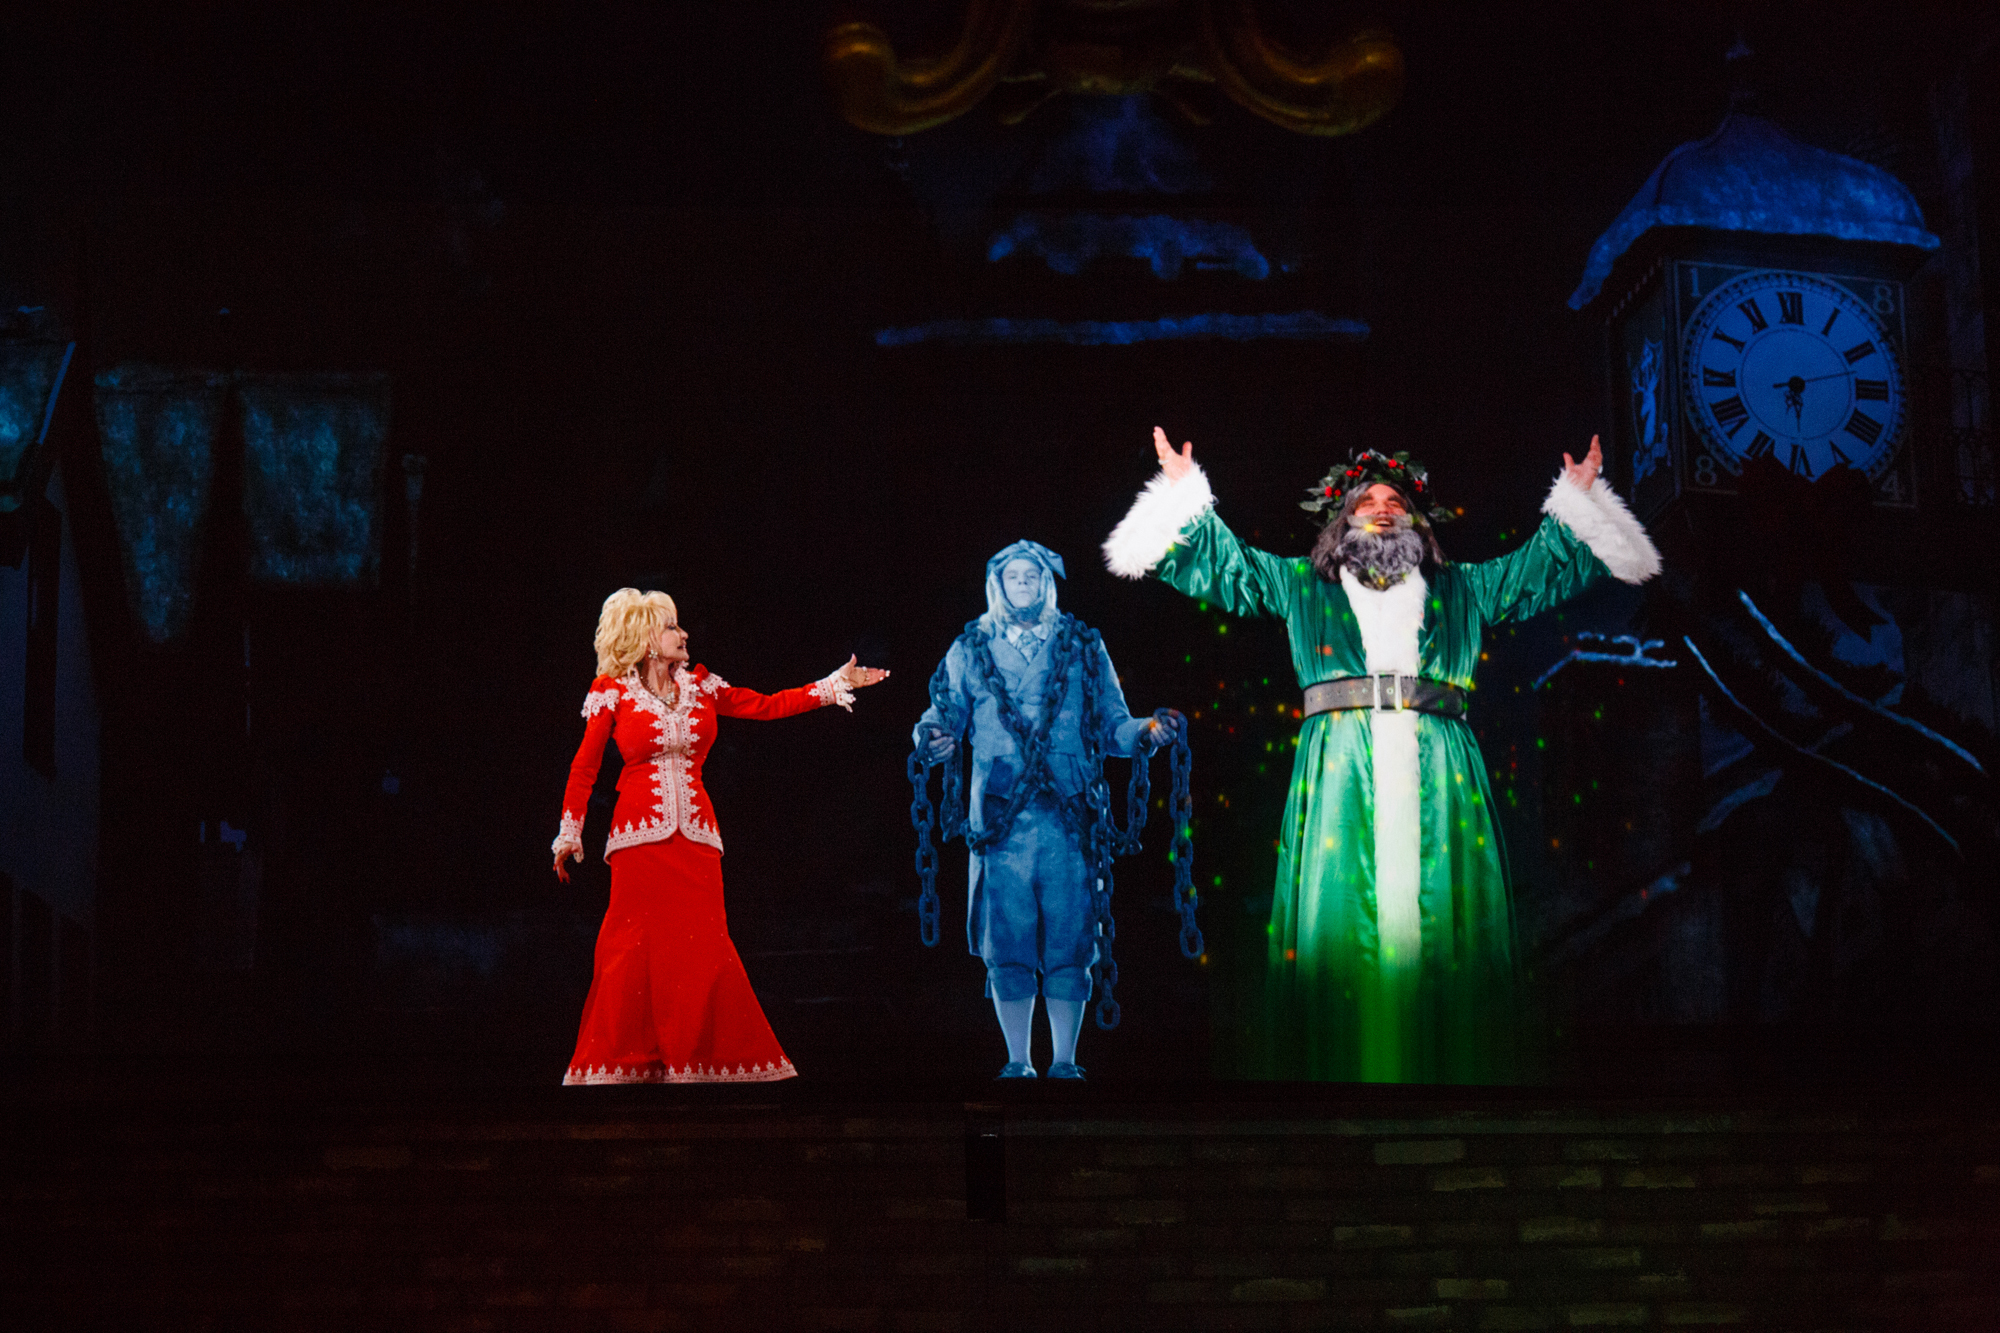 A Christmas Carol Ghosts.Dolly Parton Appears As Hologram In Dollywood S A Christmas